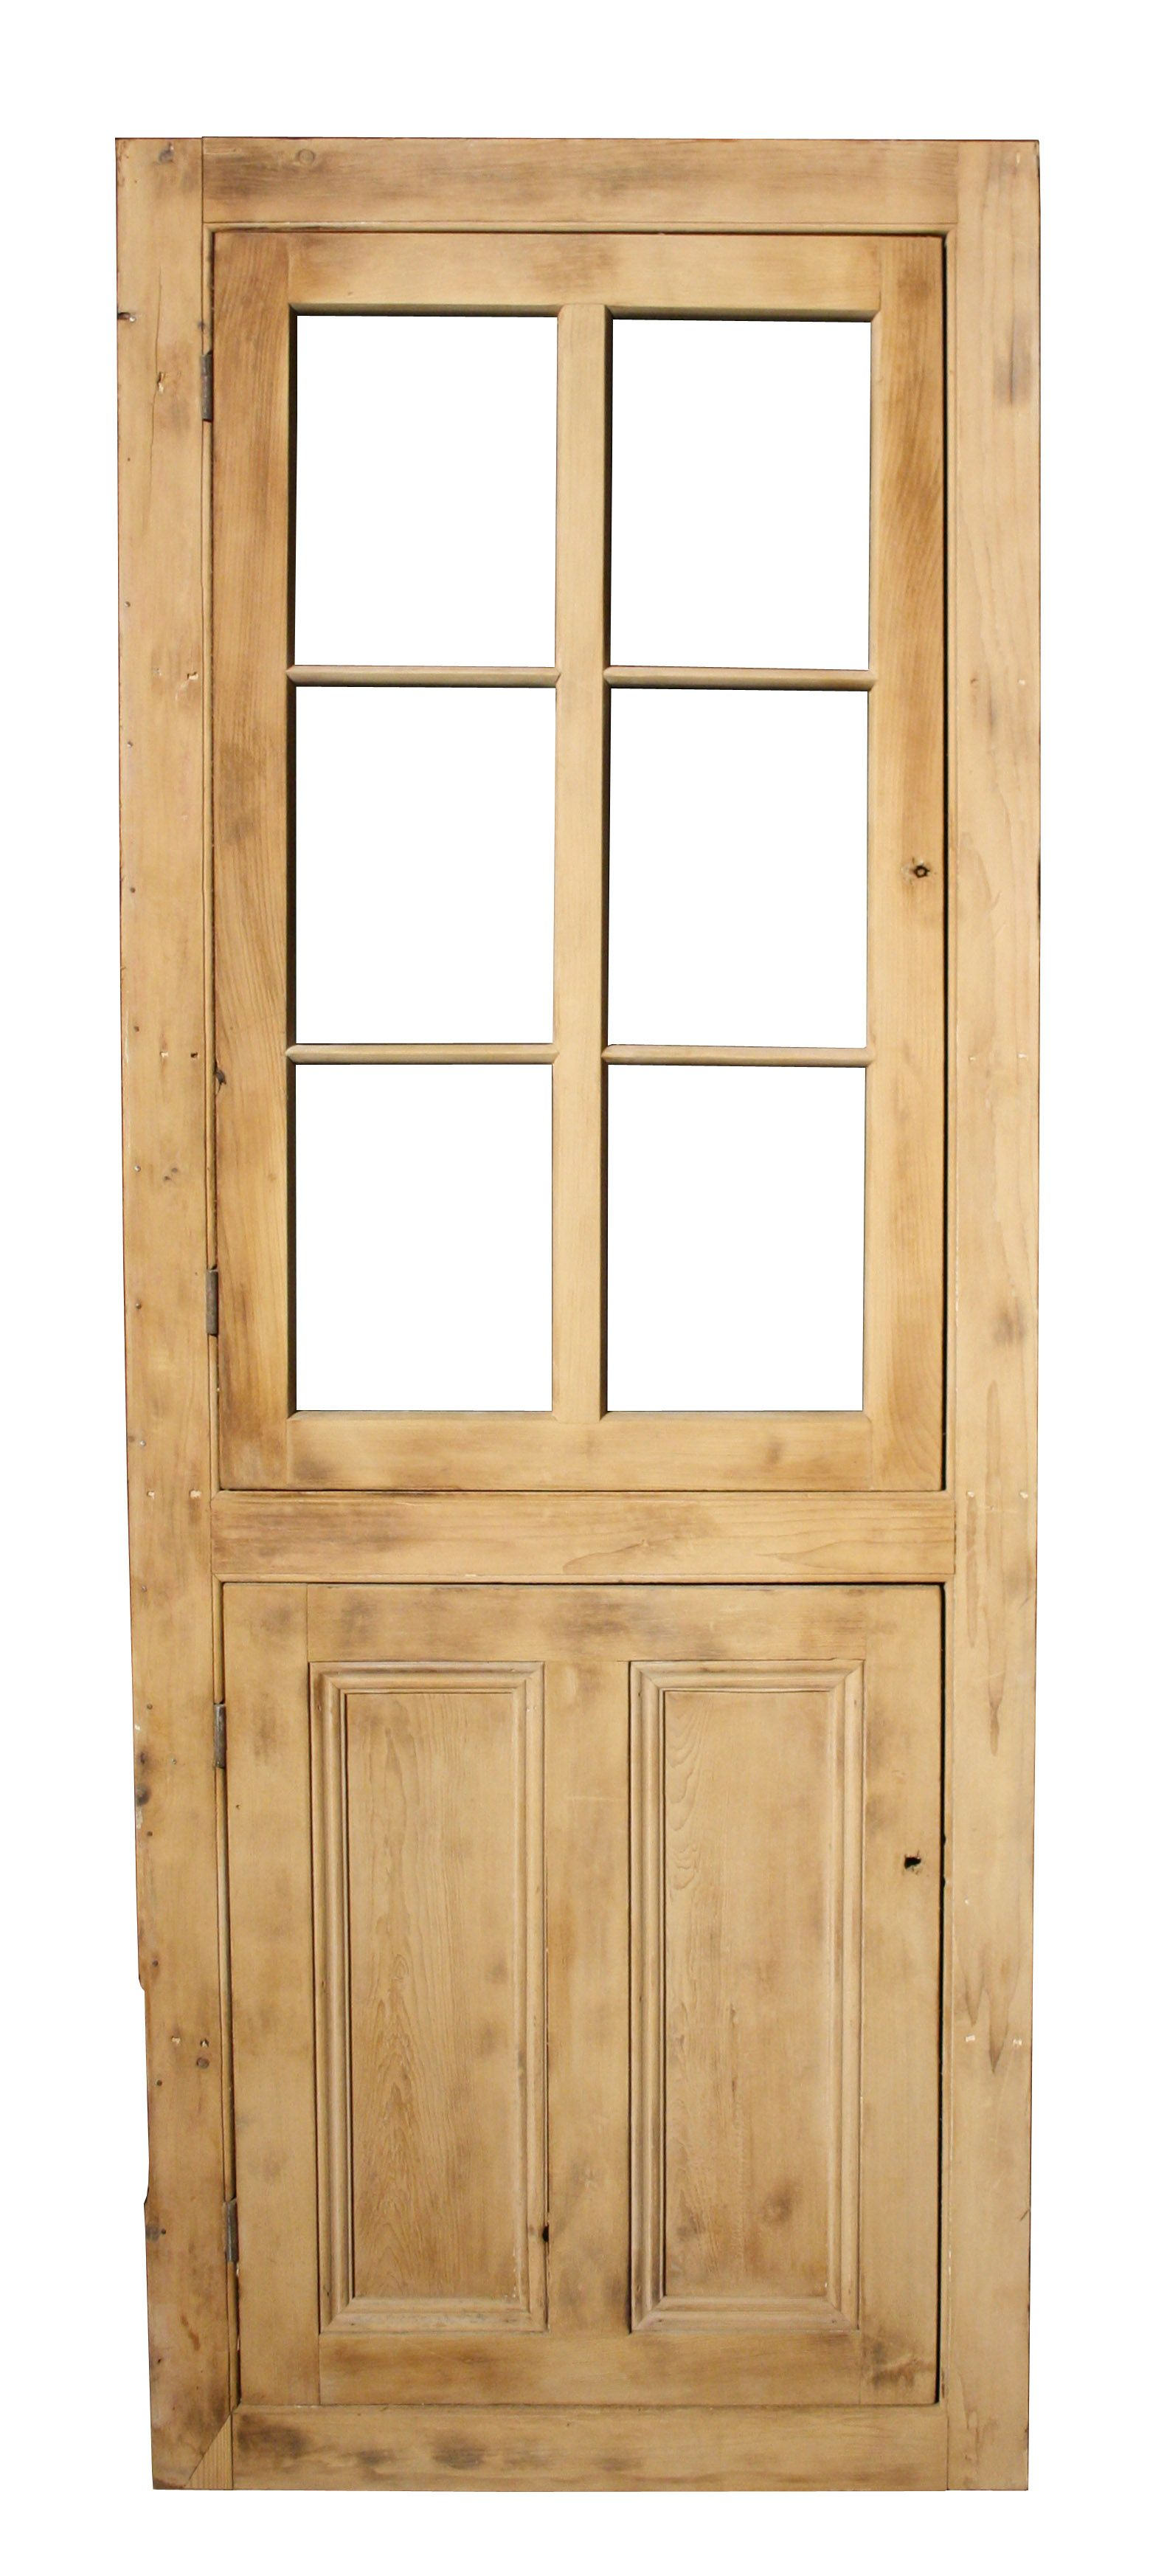 ANTIQUE PINE CUPBOARD DOORS WITH FRAME - UK Architectural Heritage - ANTIQUE PINE CUPBOARD DOORS WITH FRAME - UK Architectural Heritage